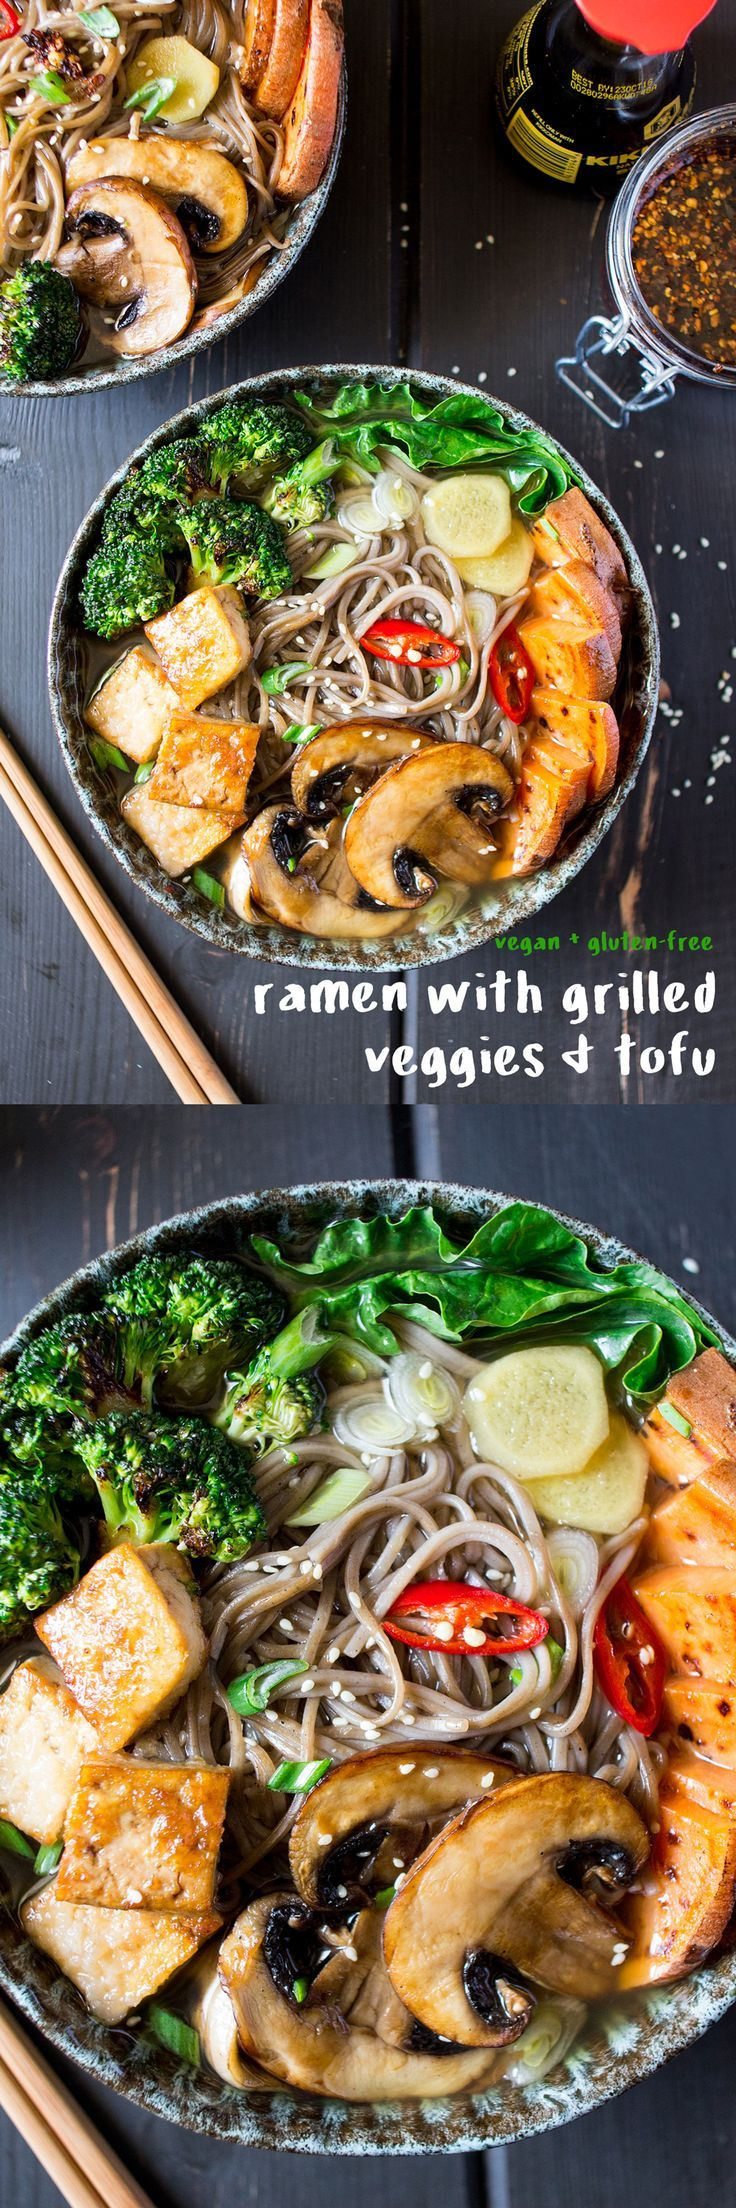 Vegan ramen with grilled vegetables and tofu is a delicious, vegan and gluten-free meal that will warm you up on a cold day and give your immune system a boost.